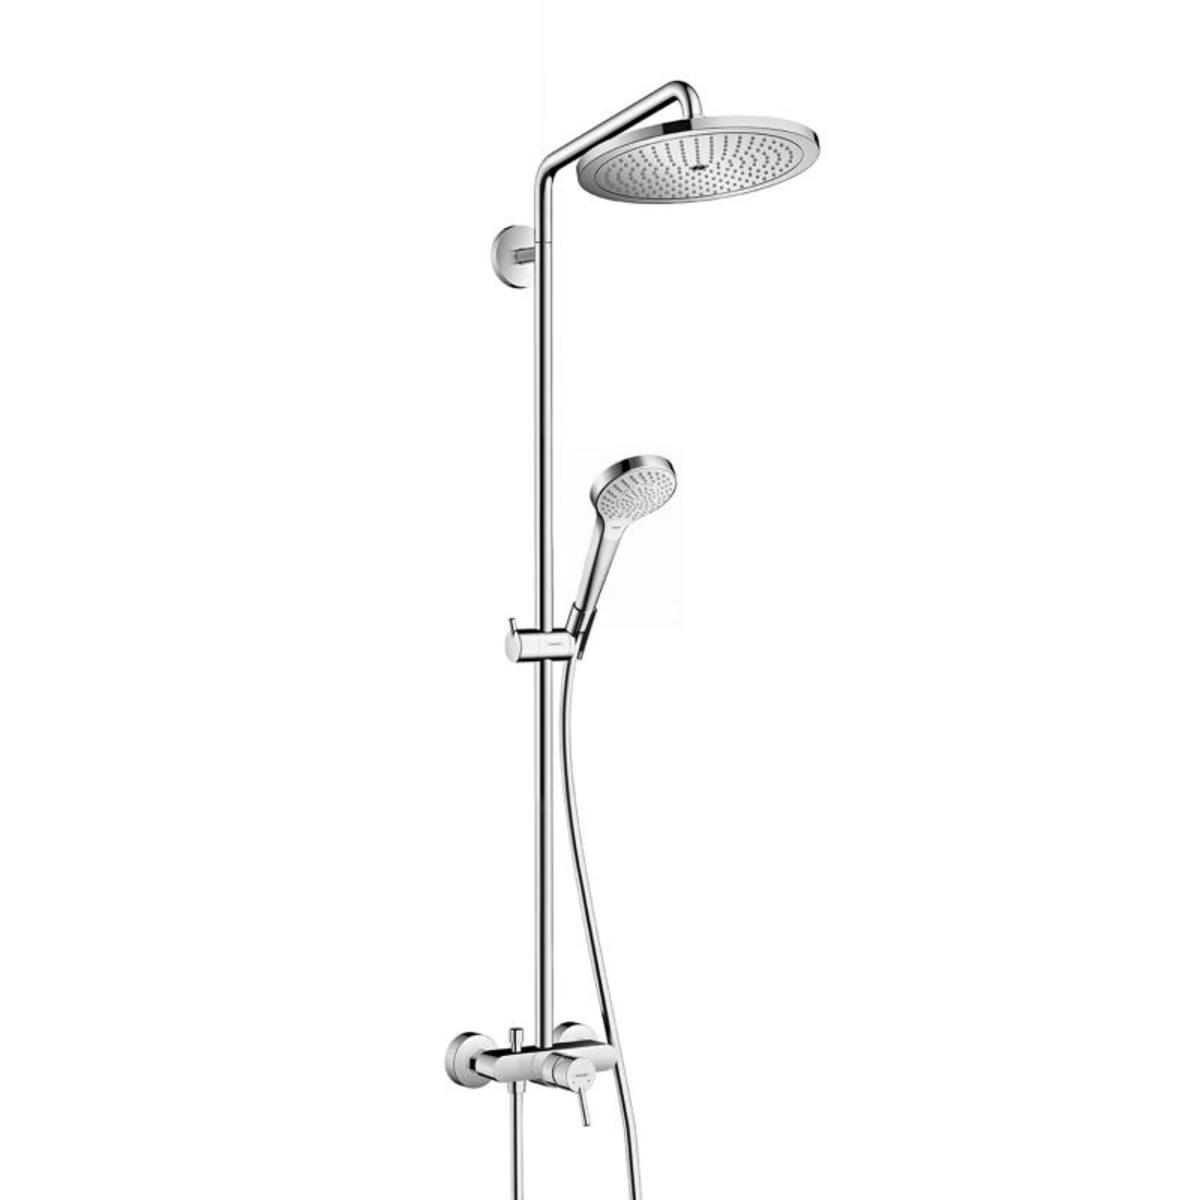 hansgrohe croma select s 280 showerpipe avec robinet de douche chrom 26791000. Black Bedroom Furniture Sets. Home Design Ideas